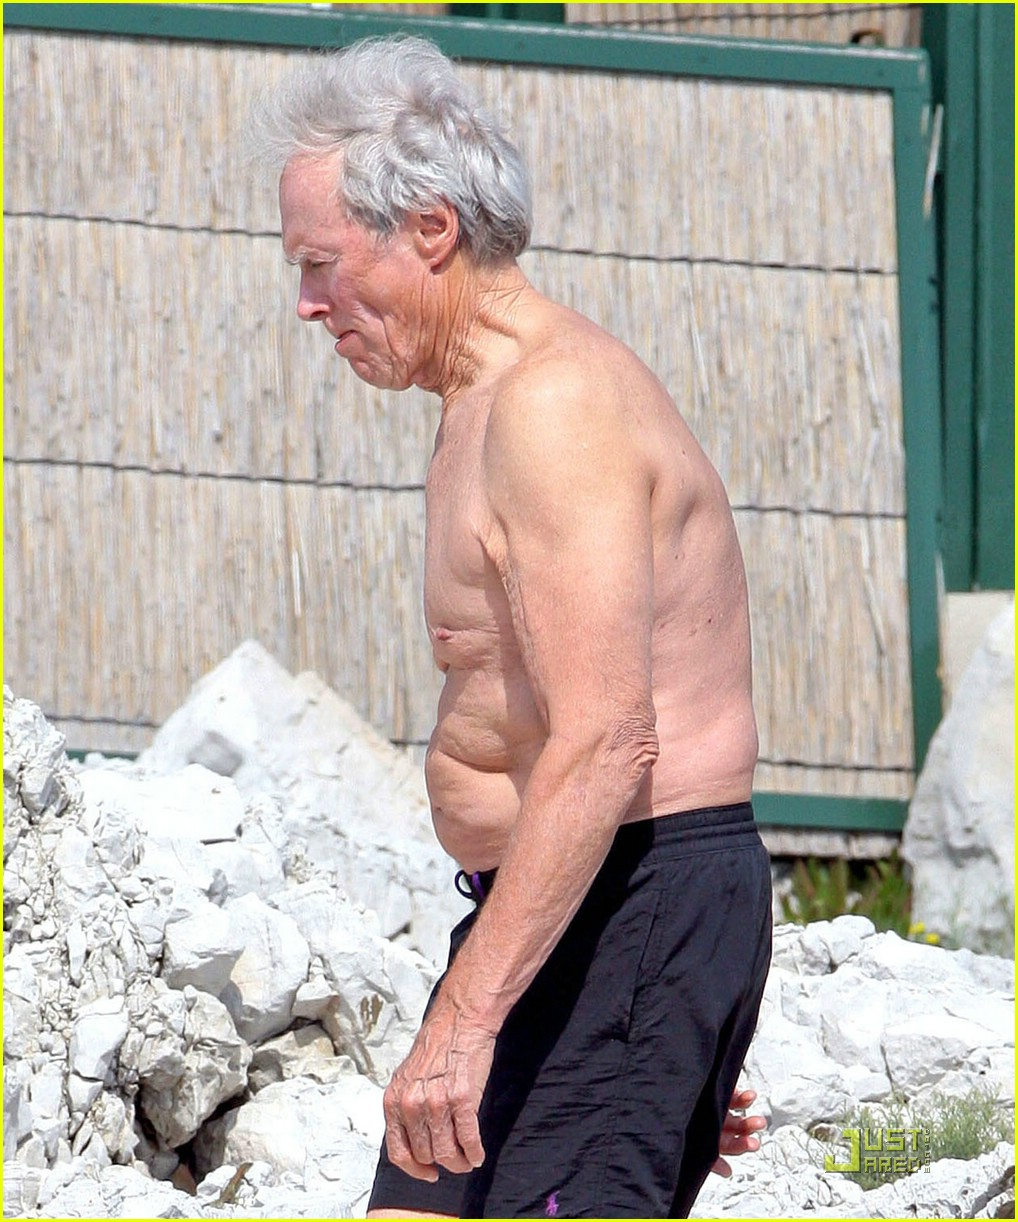 http://cdn02.cdn.justjared.com/wp-content/uploads/2008/05/clint-shirtless/clint-eastwood-shirtless-03.jpg